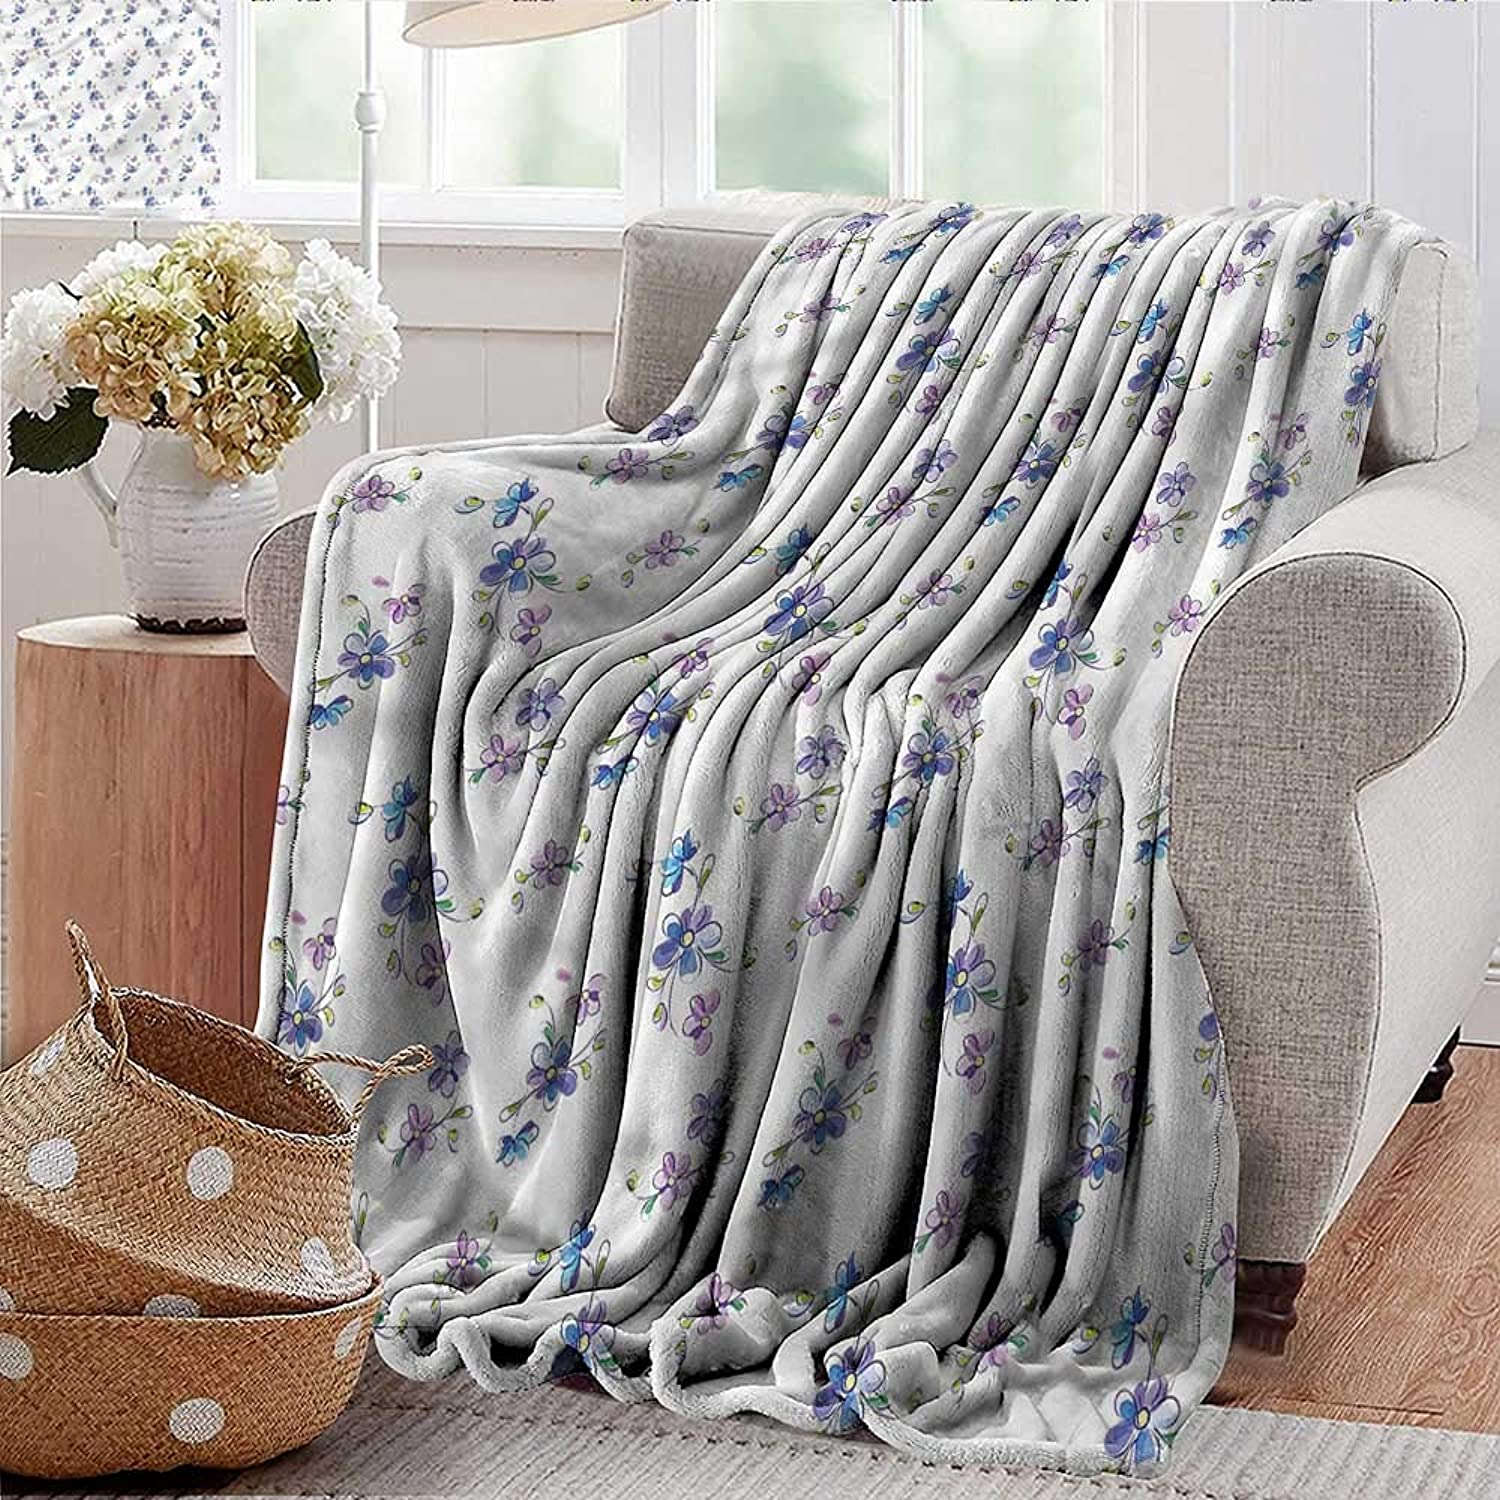 Xaviera Doherty Weighted Blanket for Kids Garden,Bridal Romantic Buds Soft Summer Cooling Lightweight Bed Blanket 50 x60